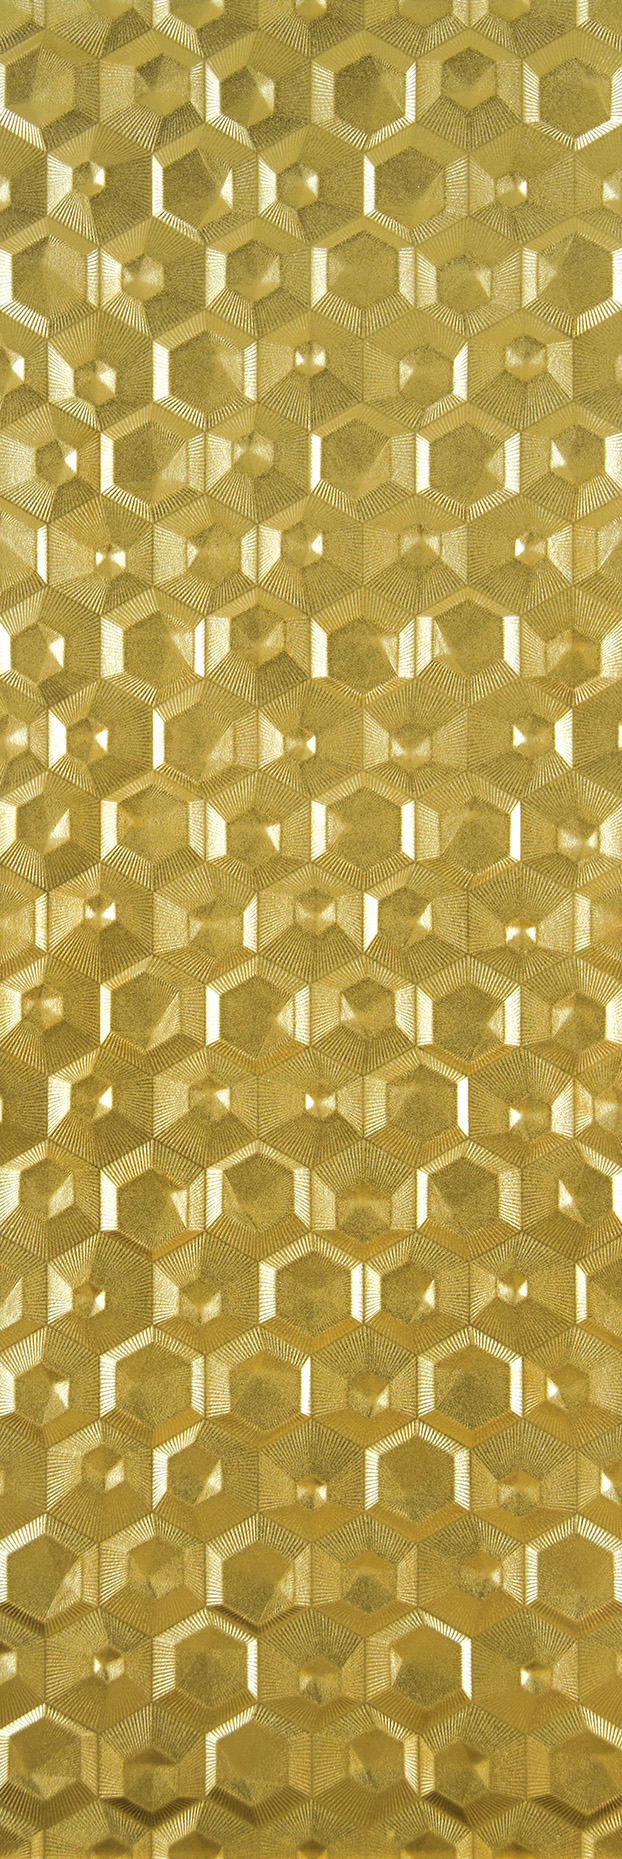 NANOFORMA GOLD ILLUSION (-8431940275494-) 89,46X29,75